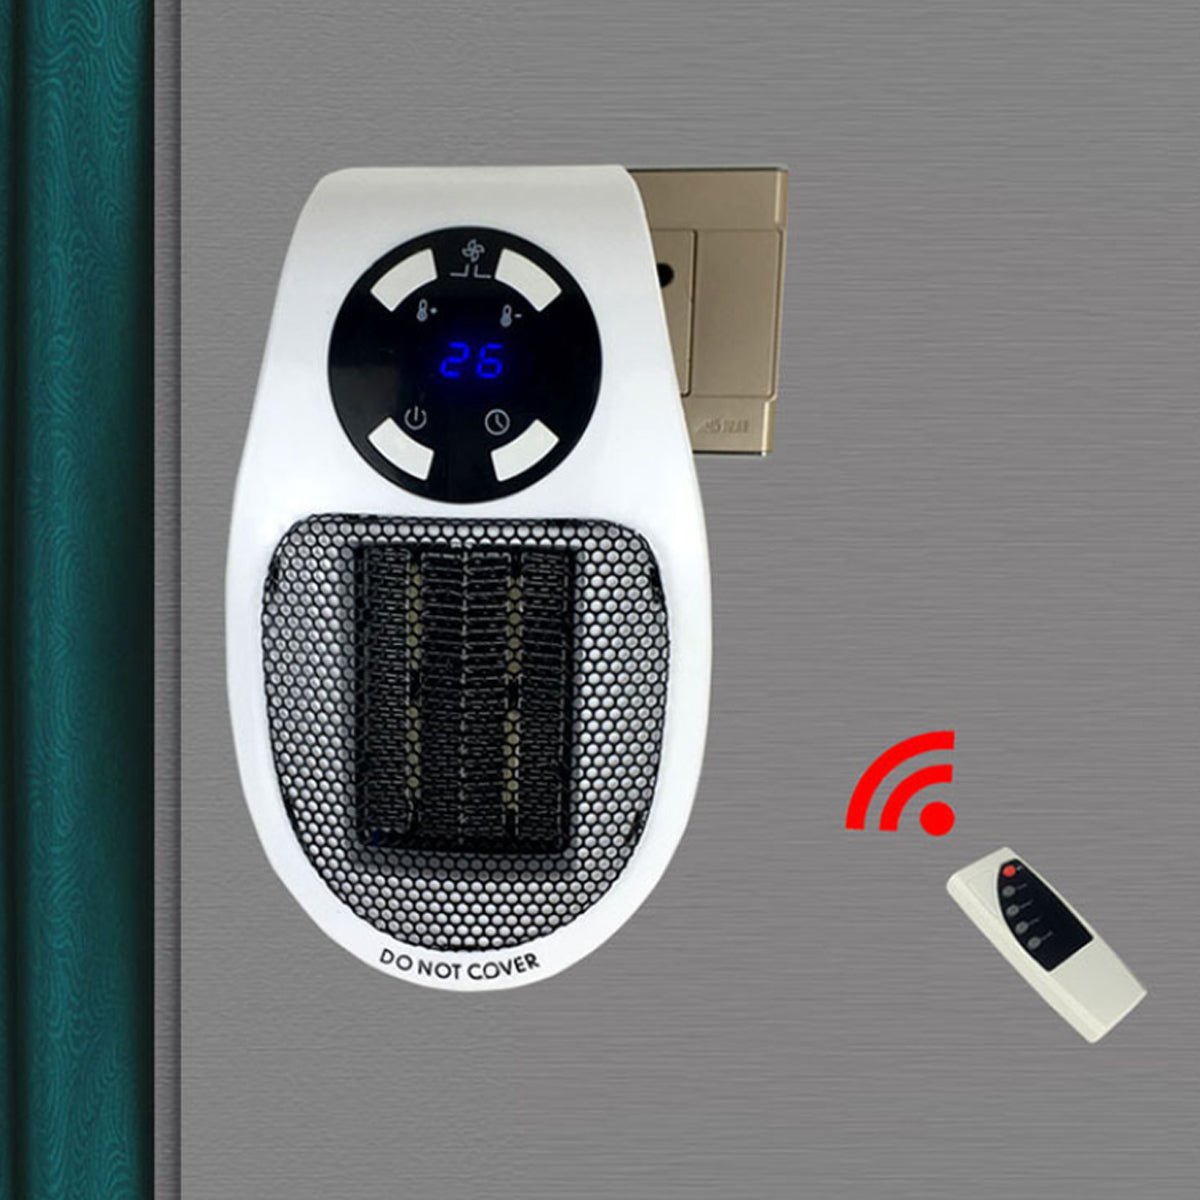 shopify-Personal Space Mini Heat Blaster With Remote Control-4